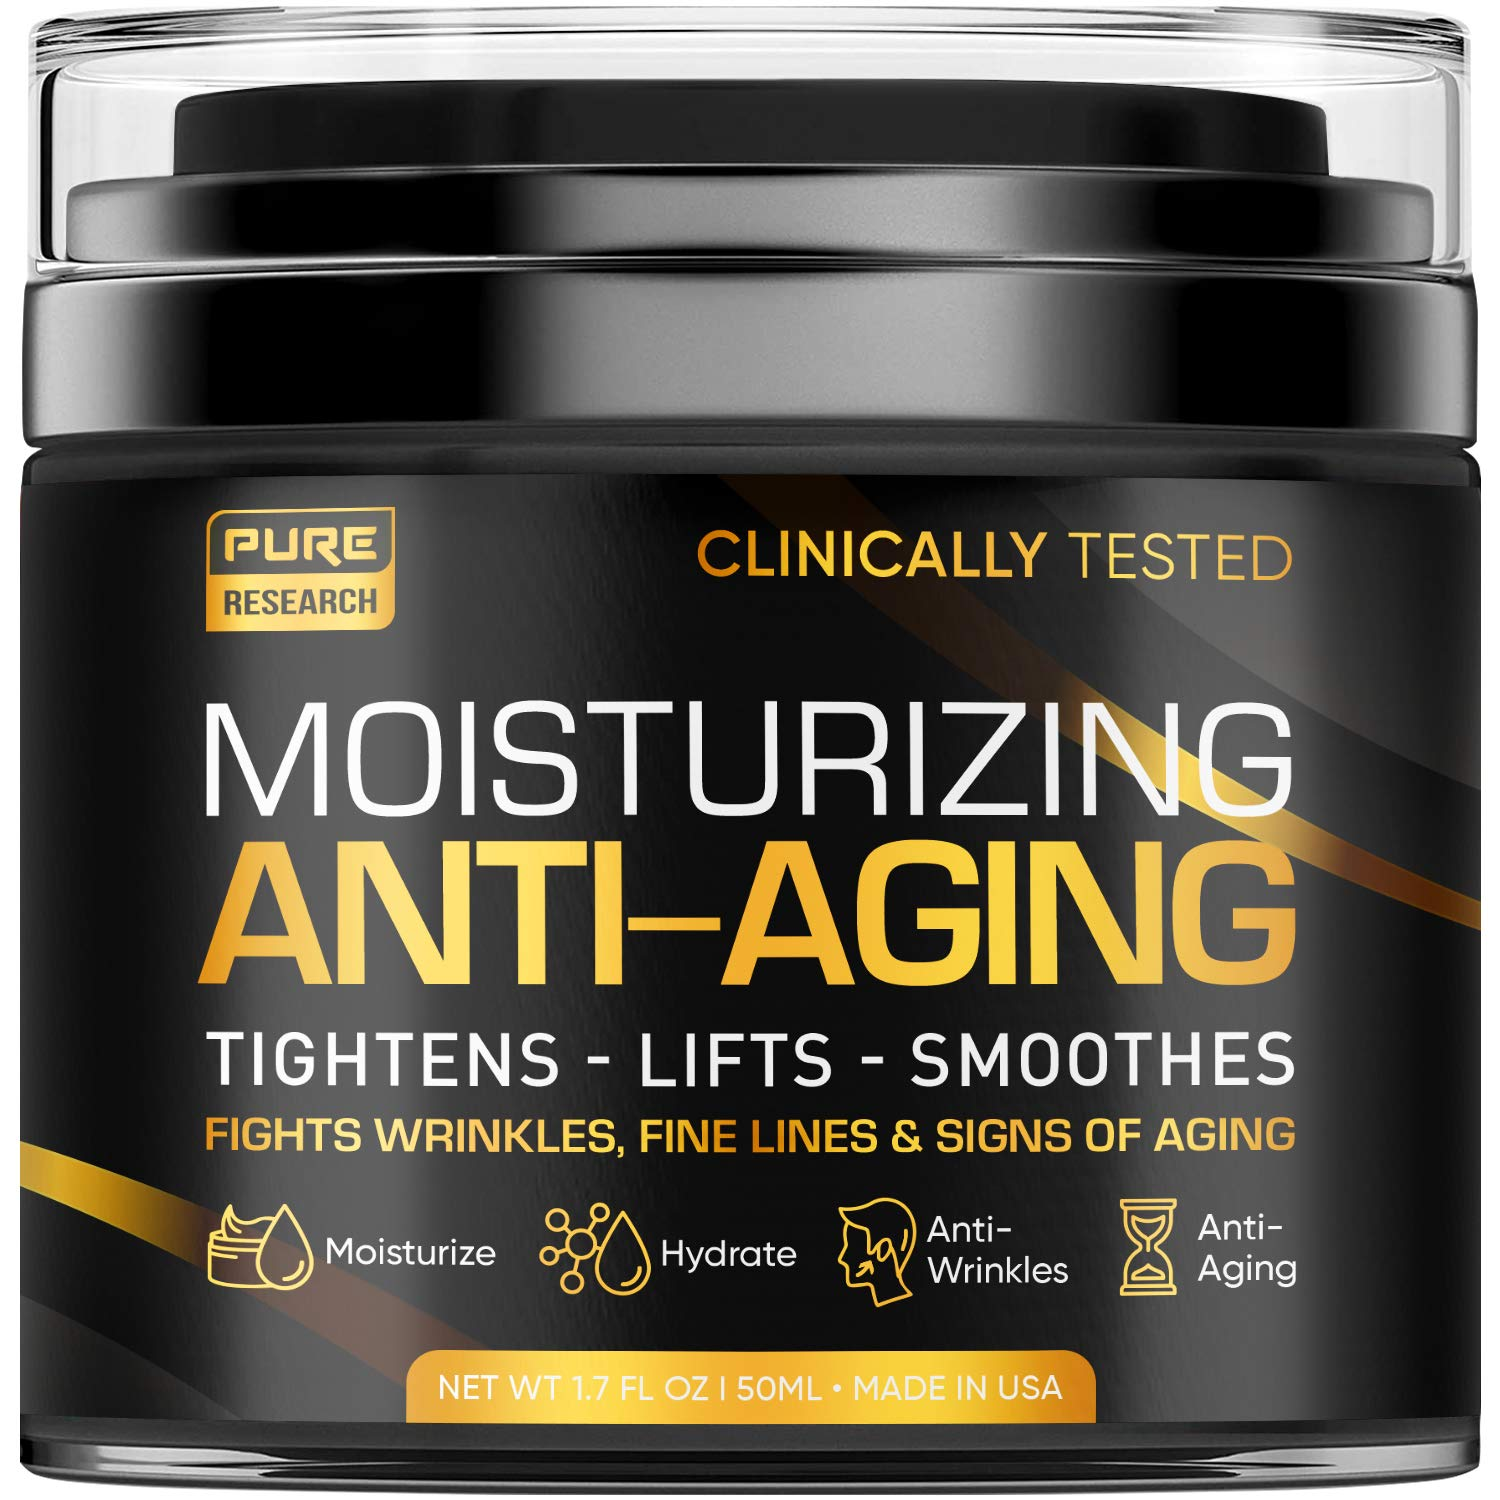 Pure Research Men's Moisturizing Anti-Aging Cream; best anti-aging products for men